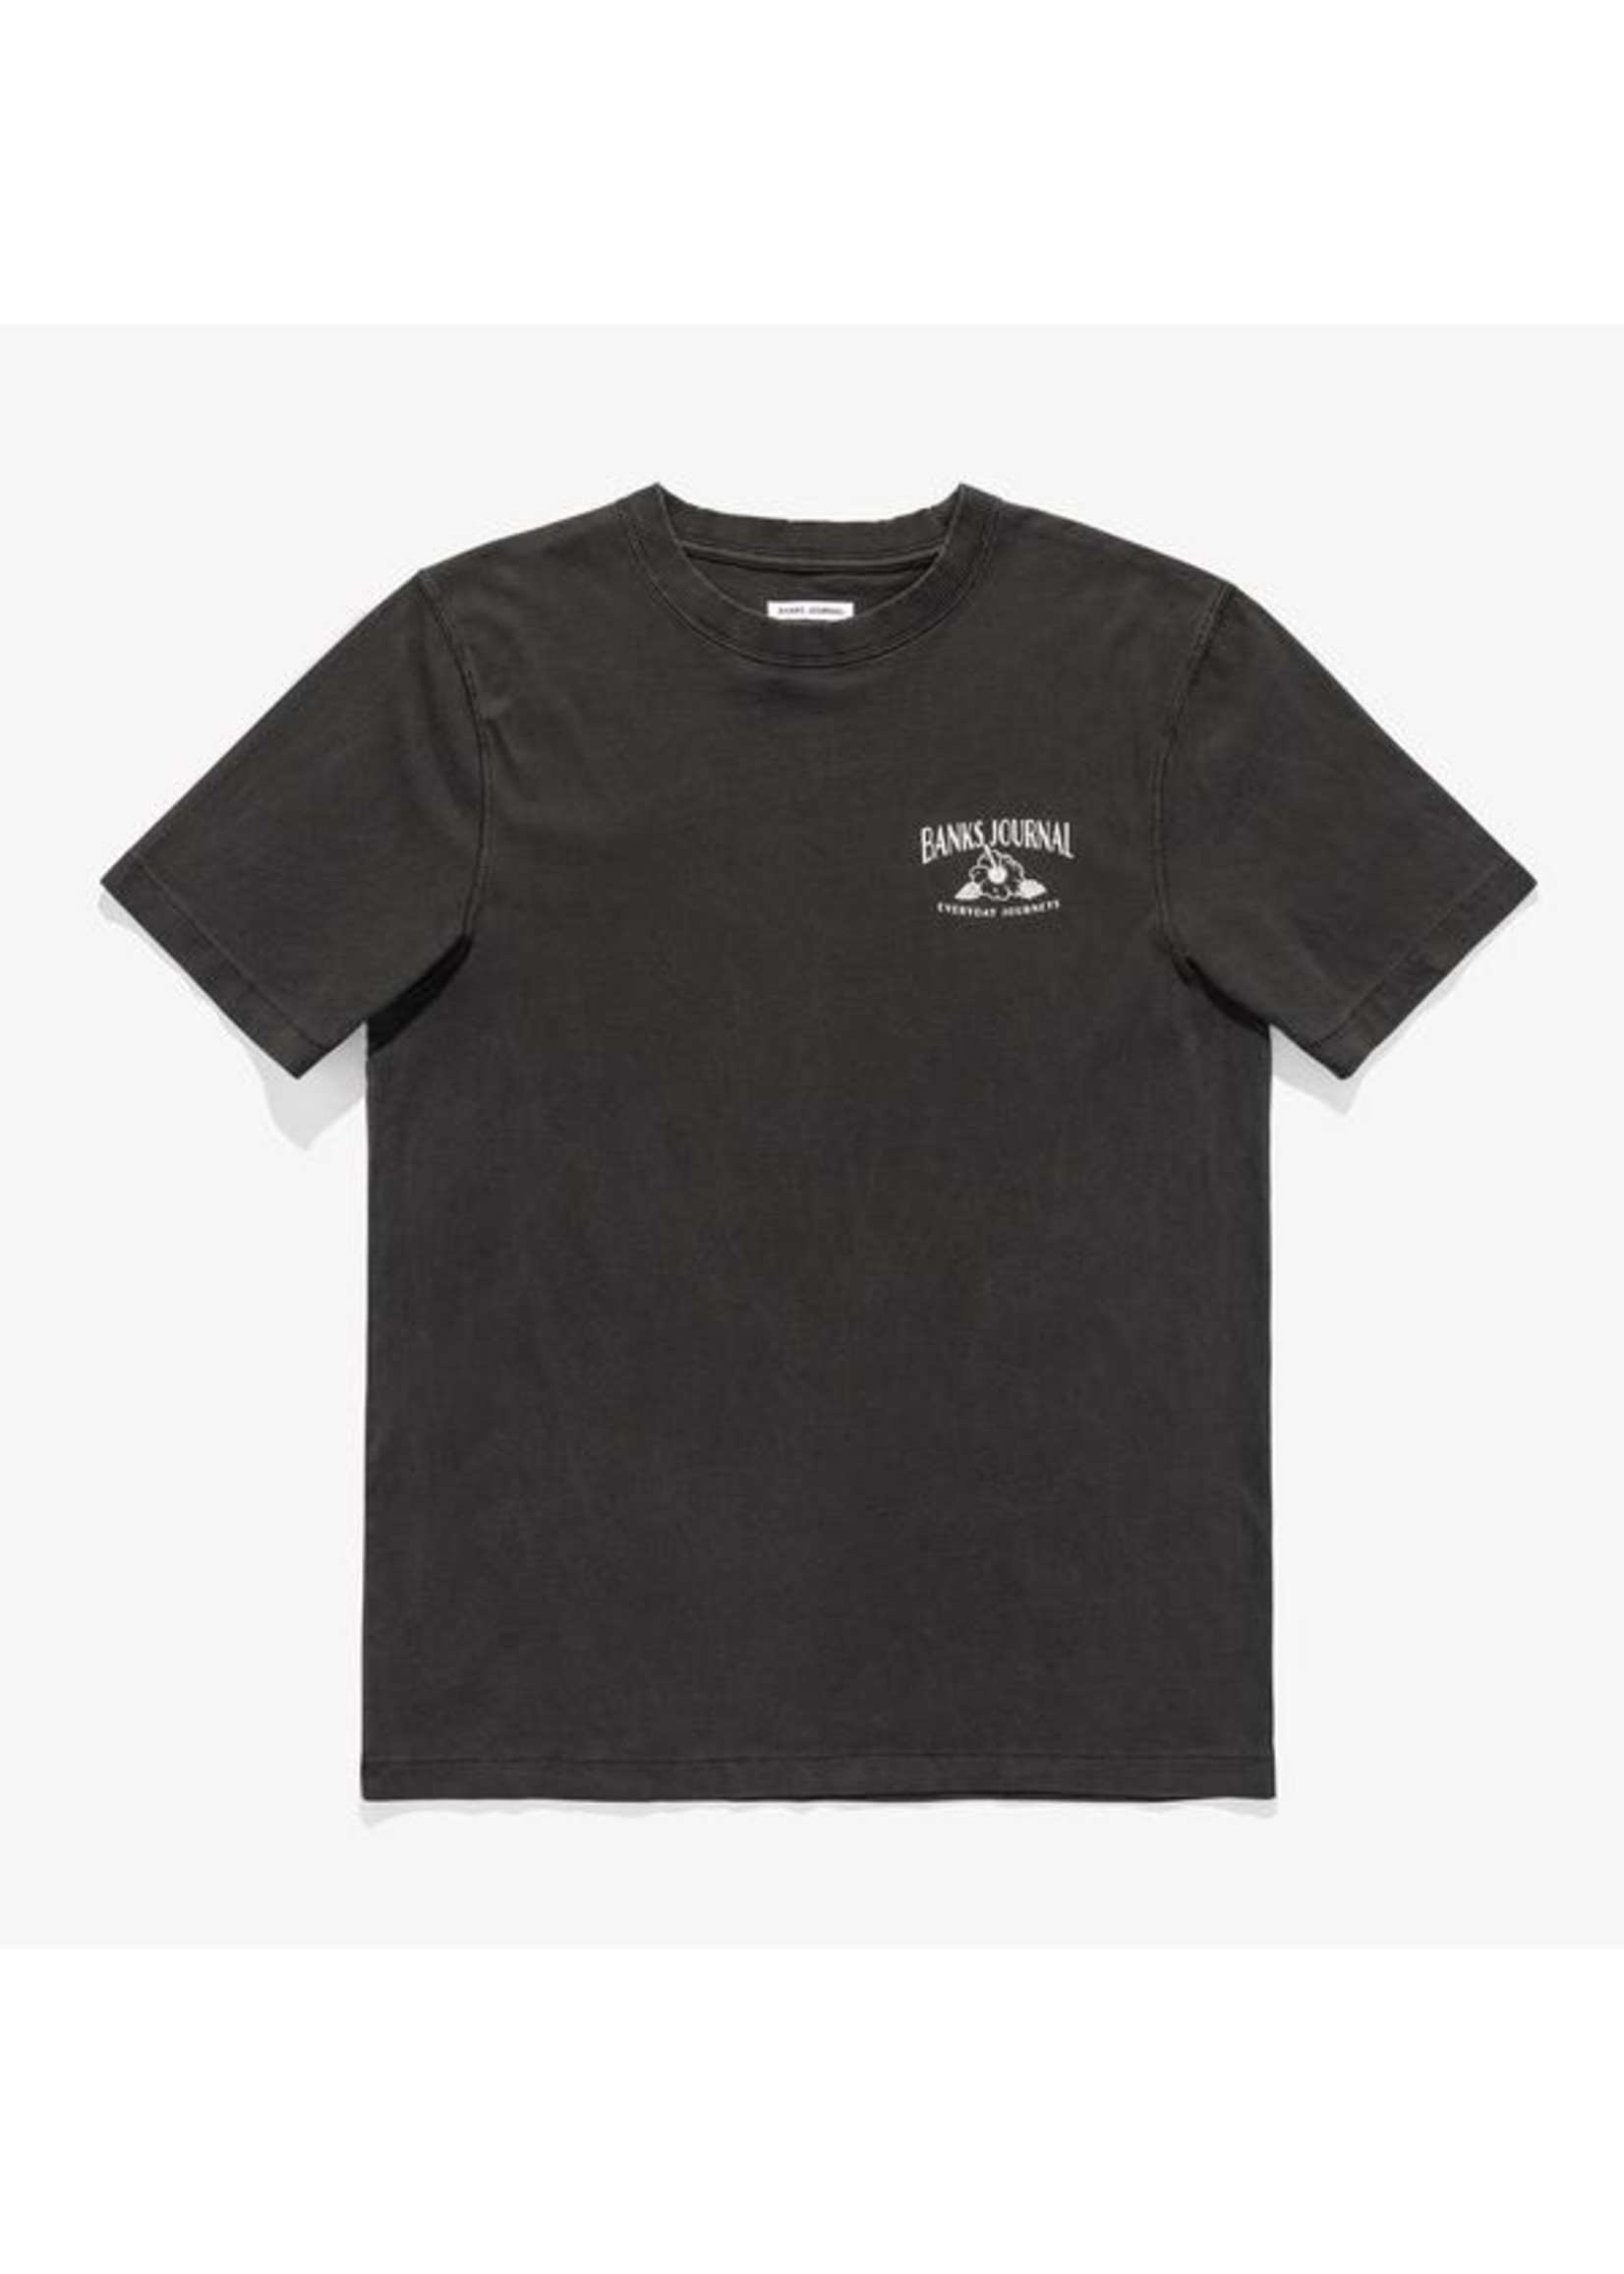 Banks Journal FRUITS TRADER TEE